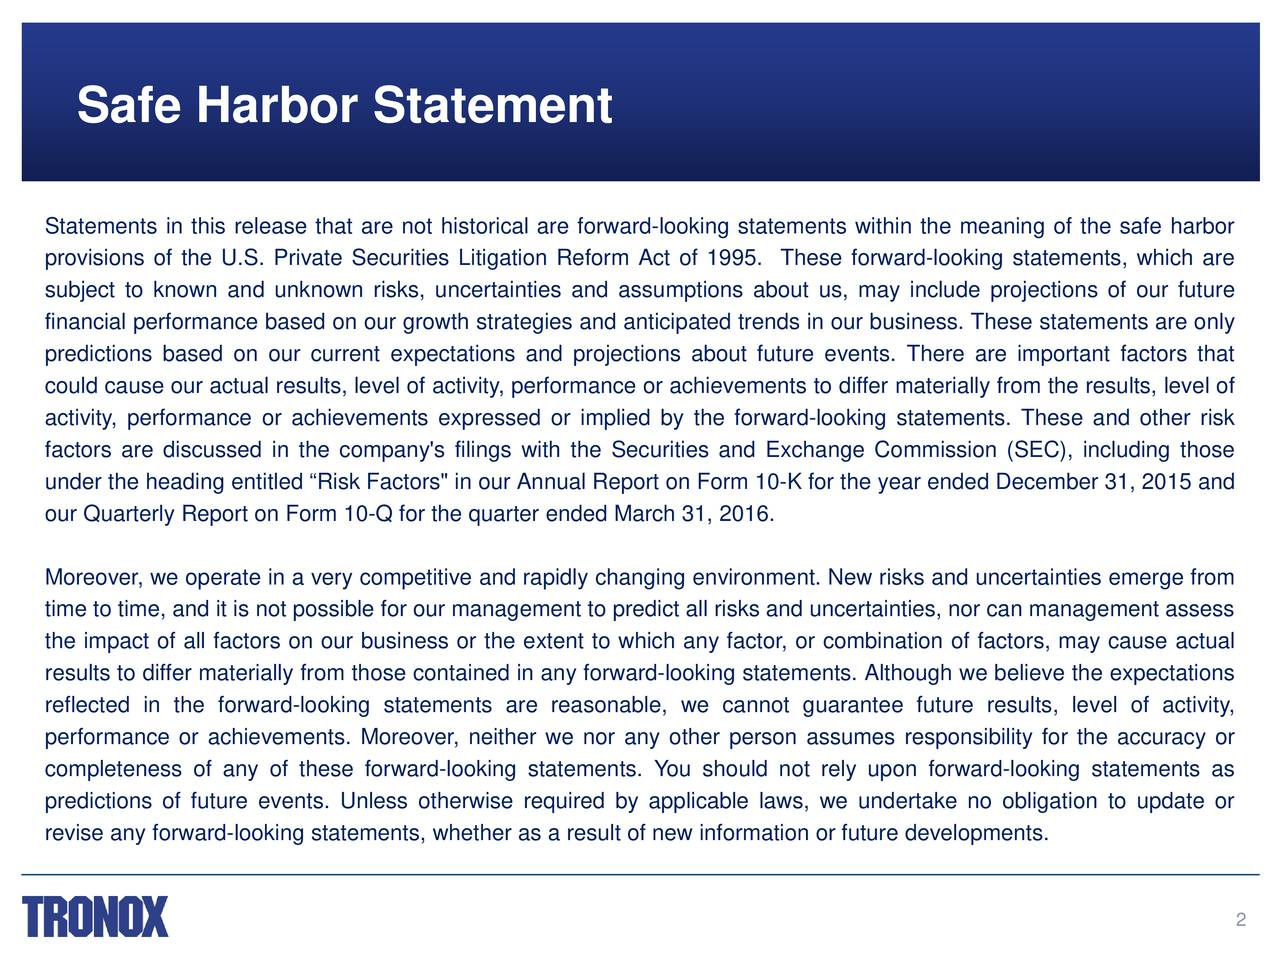 """Statements in this release that are not historical are forward-looking statements within the meaning of the safe harbor provisions of the U.S. Private Securities Litigation Reform Act of 1995. These forward-looking statements, which are subject to known and unknown risks, uncertainties and assumptions about us, may include projections of our future financial performance based on our growth strategies and anticipated trends in our business. These statements are only predictions based on our current expectations and projections about future events. There are important factors that could cause our actual results, level of activity,performance or achievements to differ materially from the results, level of activity,performance or achievements expressed or implied by the forward-looking statements. These and other risk factors are discussed in the company's filings with the Securities and Exchange Commission (SEC), including those under the heading entitled Risk Factors"""" in our Annual Report on Form 10-K for the year ended December 31, 2015 and our Quarterly Report on Form 10-Q for the quarter ended March 31, 2016. Moreover, we operate in a very competitive and rapidly changing environment. New risks and uncertainties emerge from time to time, and it is not possible for our management to predict all risks and uncertainties, nor can management assess the impact of all factors on our business or the extent to which any factor, or combination of factors, may cause actual results to differ materially from those contained in any forward-looking statements. Although we believe the expectations reflected in the forward-looking statements are reasonable, we cannot guarantee future results, level of activity, performance or achievements. Moreover, neither we nor any other person assumes responsibility for the accuracy or completeness of any of these forward-looking statements. You should not rely upon forward-looking statements as predictions of future events. Unless otherwise re"""